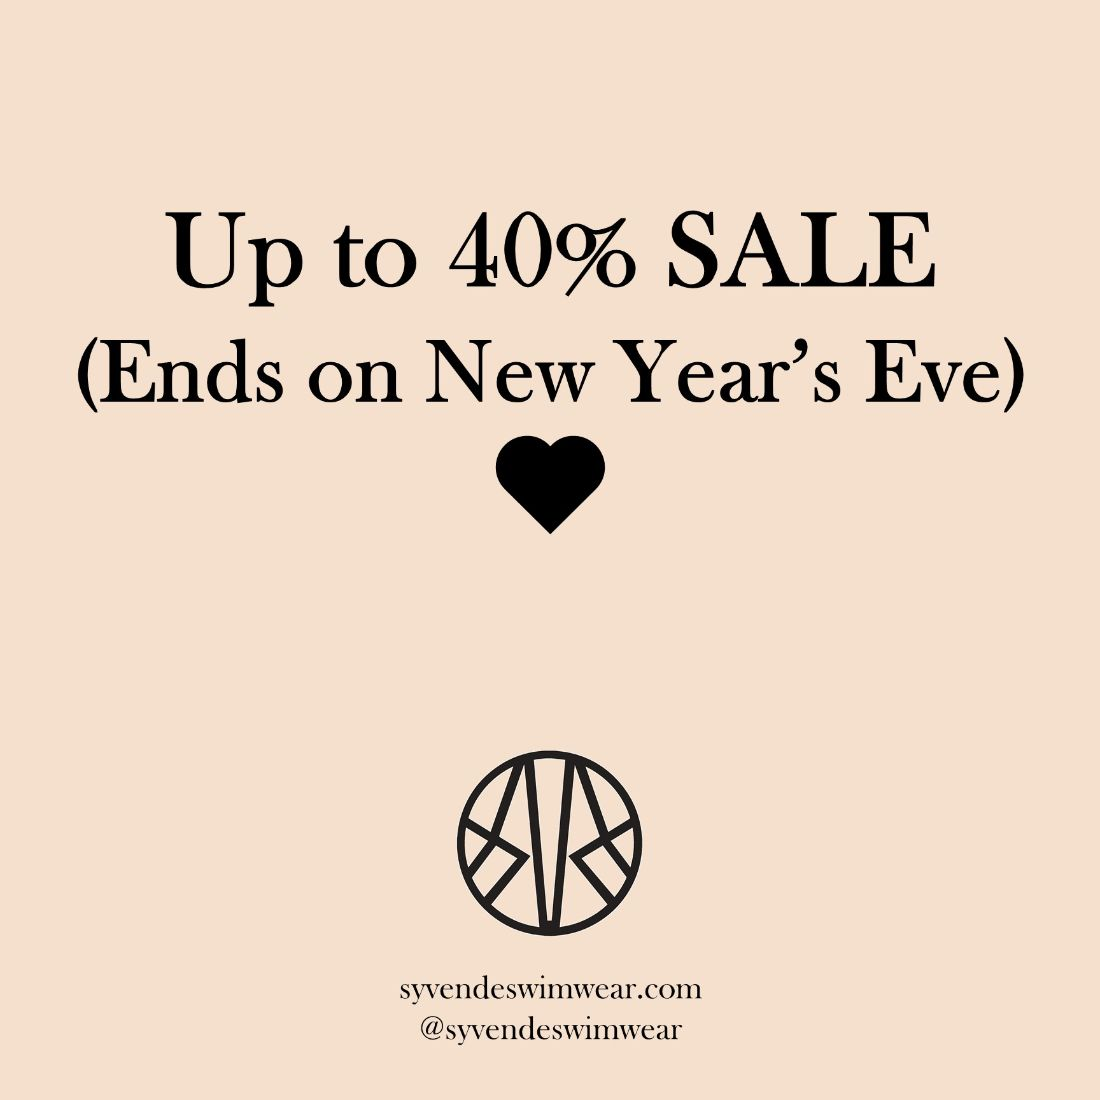 👜👙Up to 40% SALE ends on New Year's Eve! 👙👜 - https://t.co/Atp1fN9u9v #sale #fashionsale #fashion #swimsuit #bikini #sustainablefashion #econyl https://t.co/xNi5tLslcA